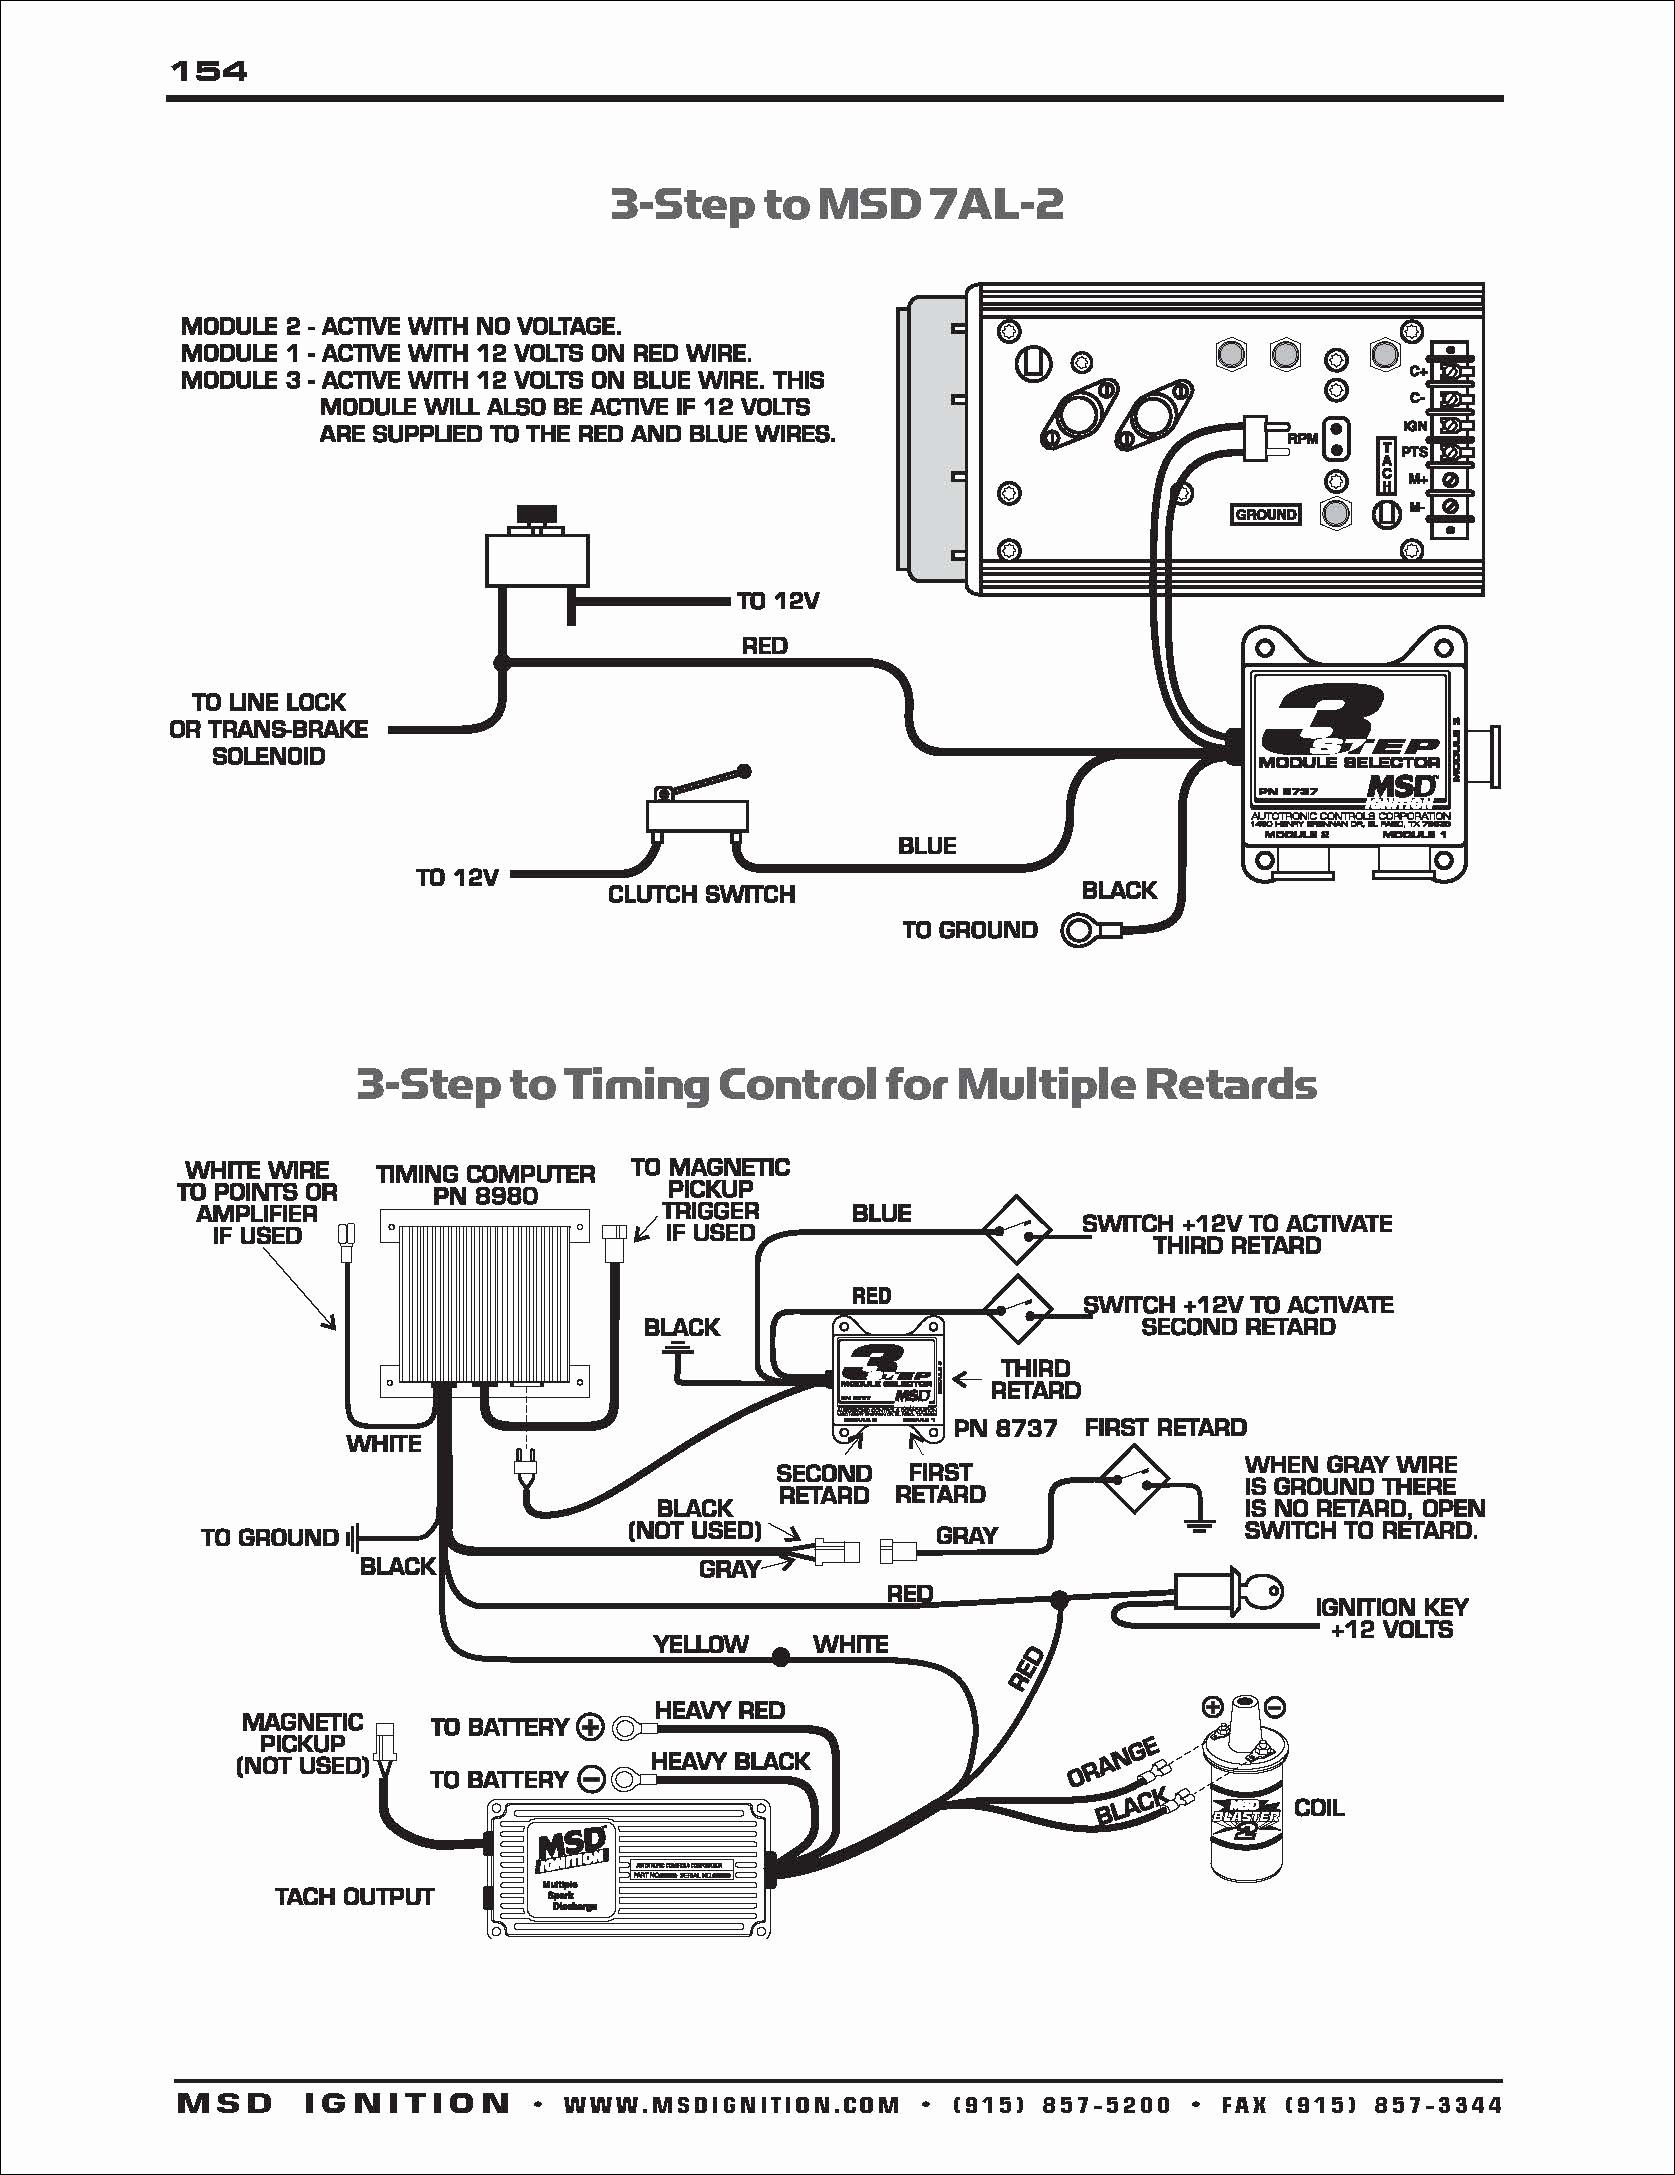 Small Engine Repair Diagrams Murray Ignition Switch Wiring Diagram Data Wiring Diagrams • Of Small Engine Repair Diagrams Switch Wiring Diagram Collection